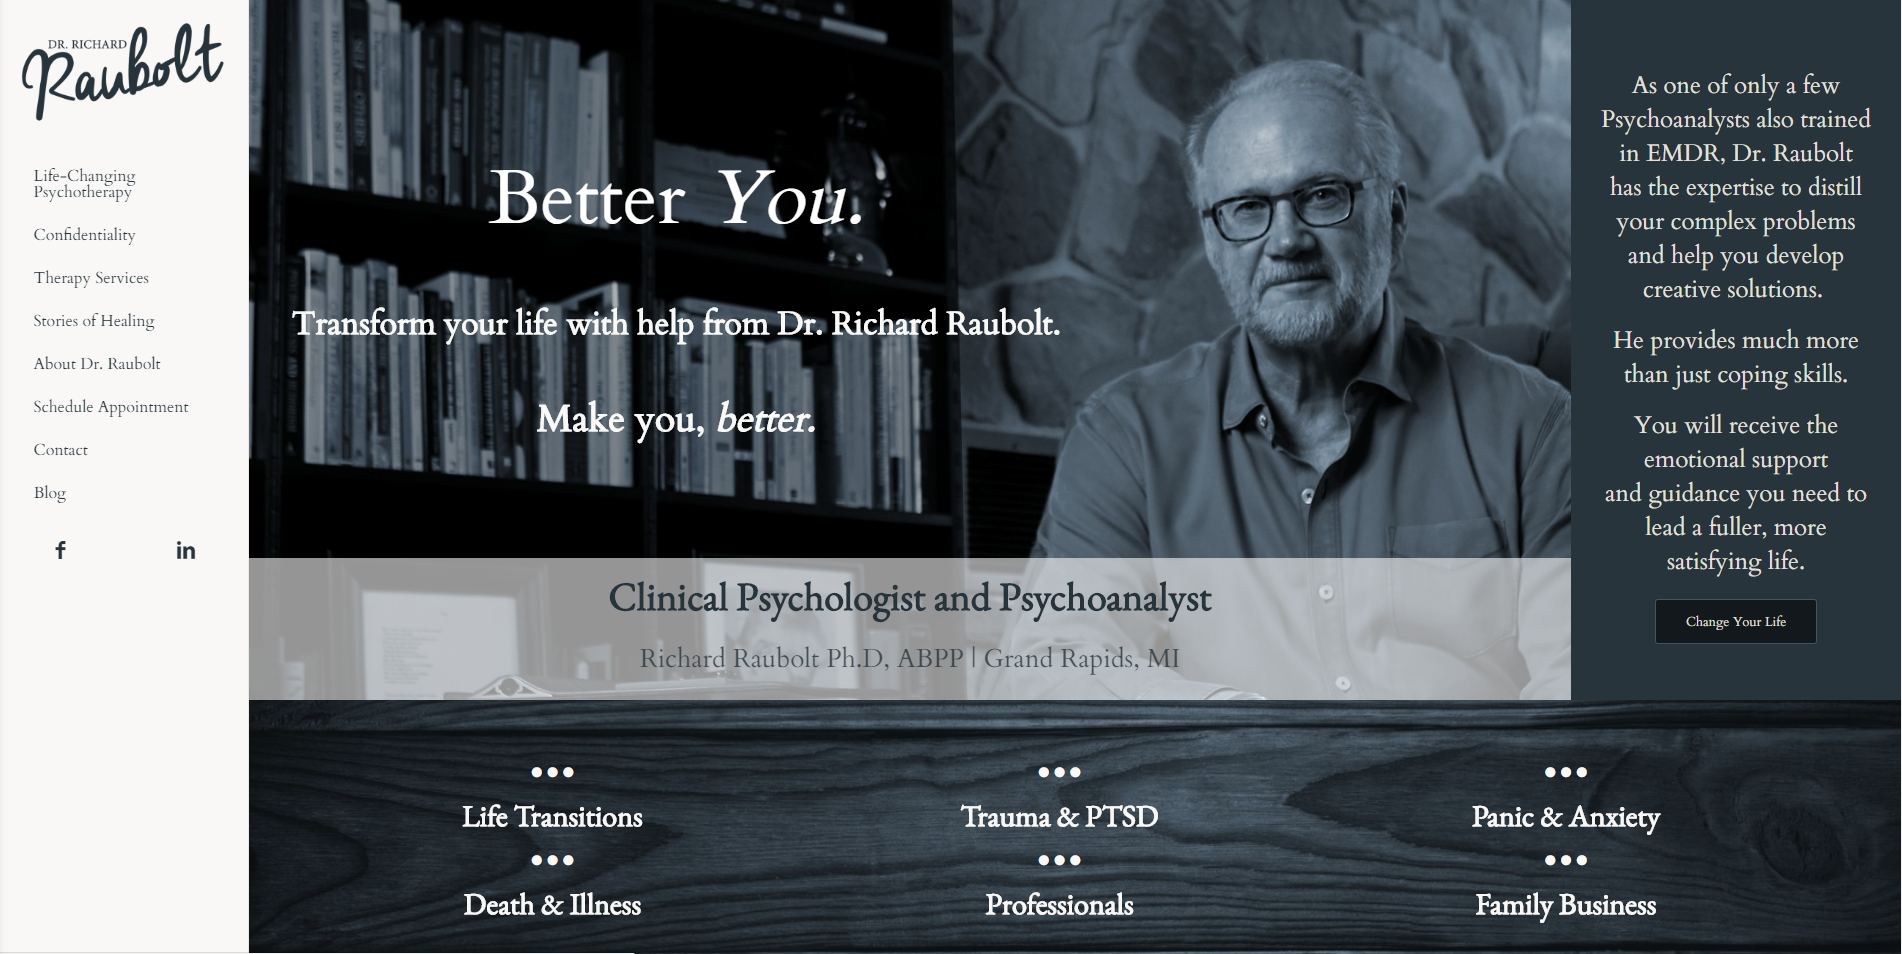 Dr Richard Raubolt Website by MoxieMen, Incorporated - MoxieMenInc.com